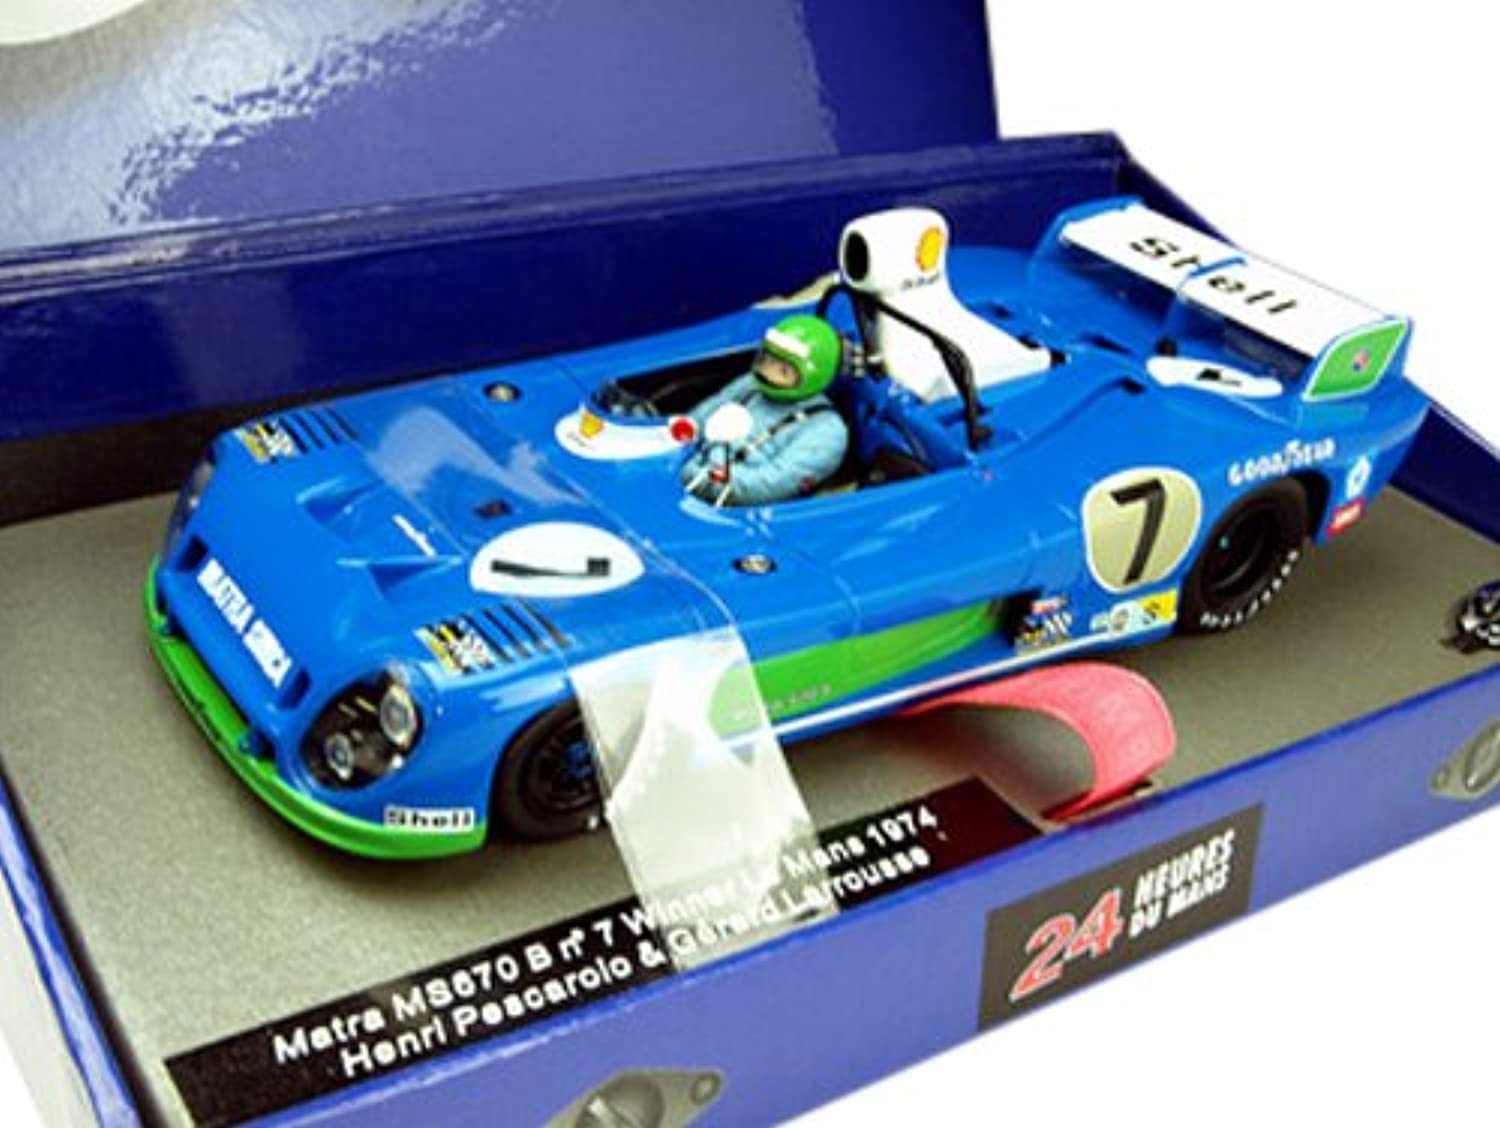 LE MANS miniatures 1 32 Matra MS670B 74 Le Mans winner   7 (japan import)